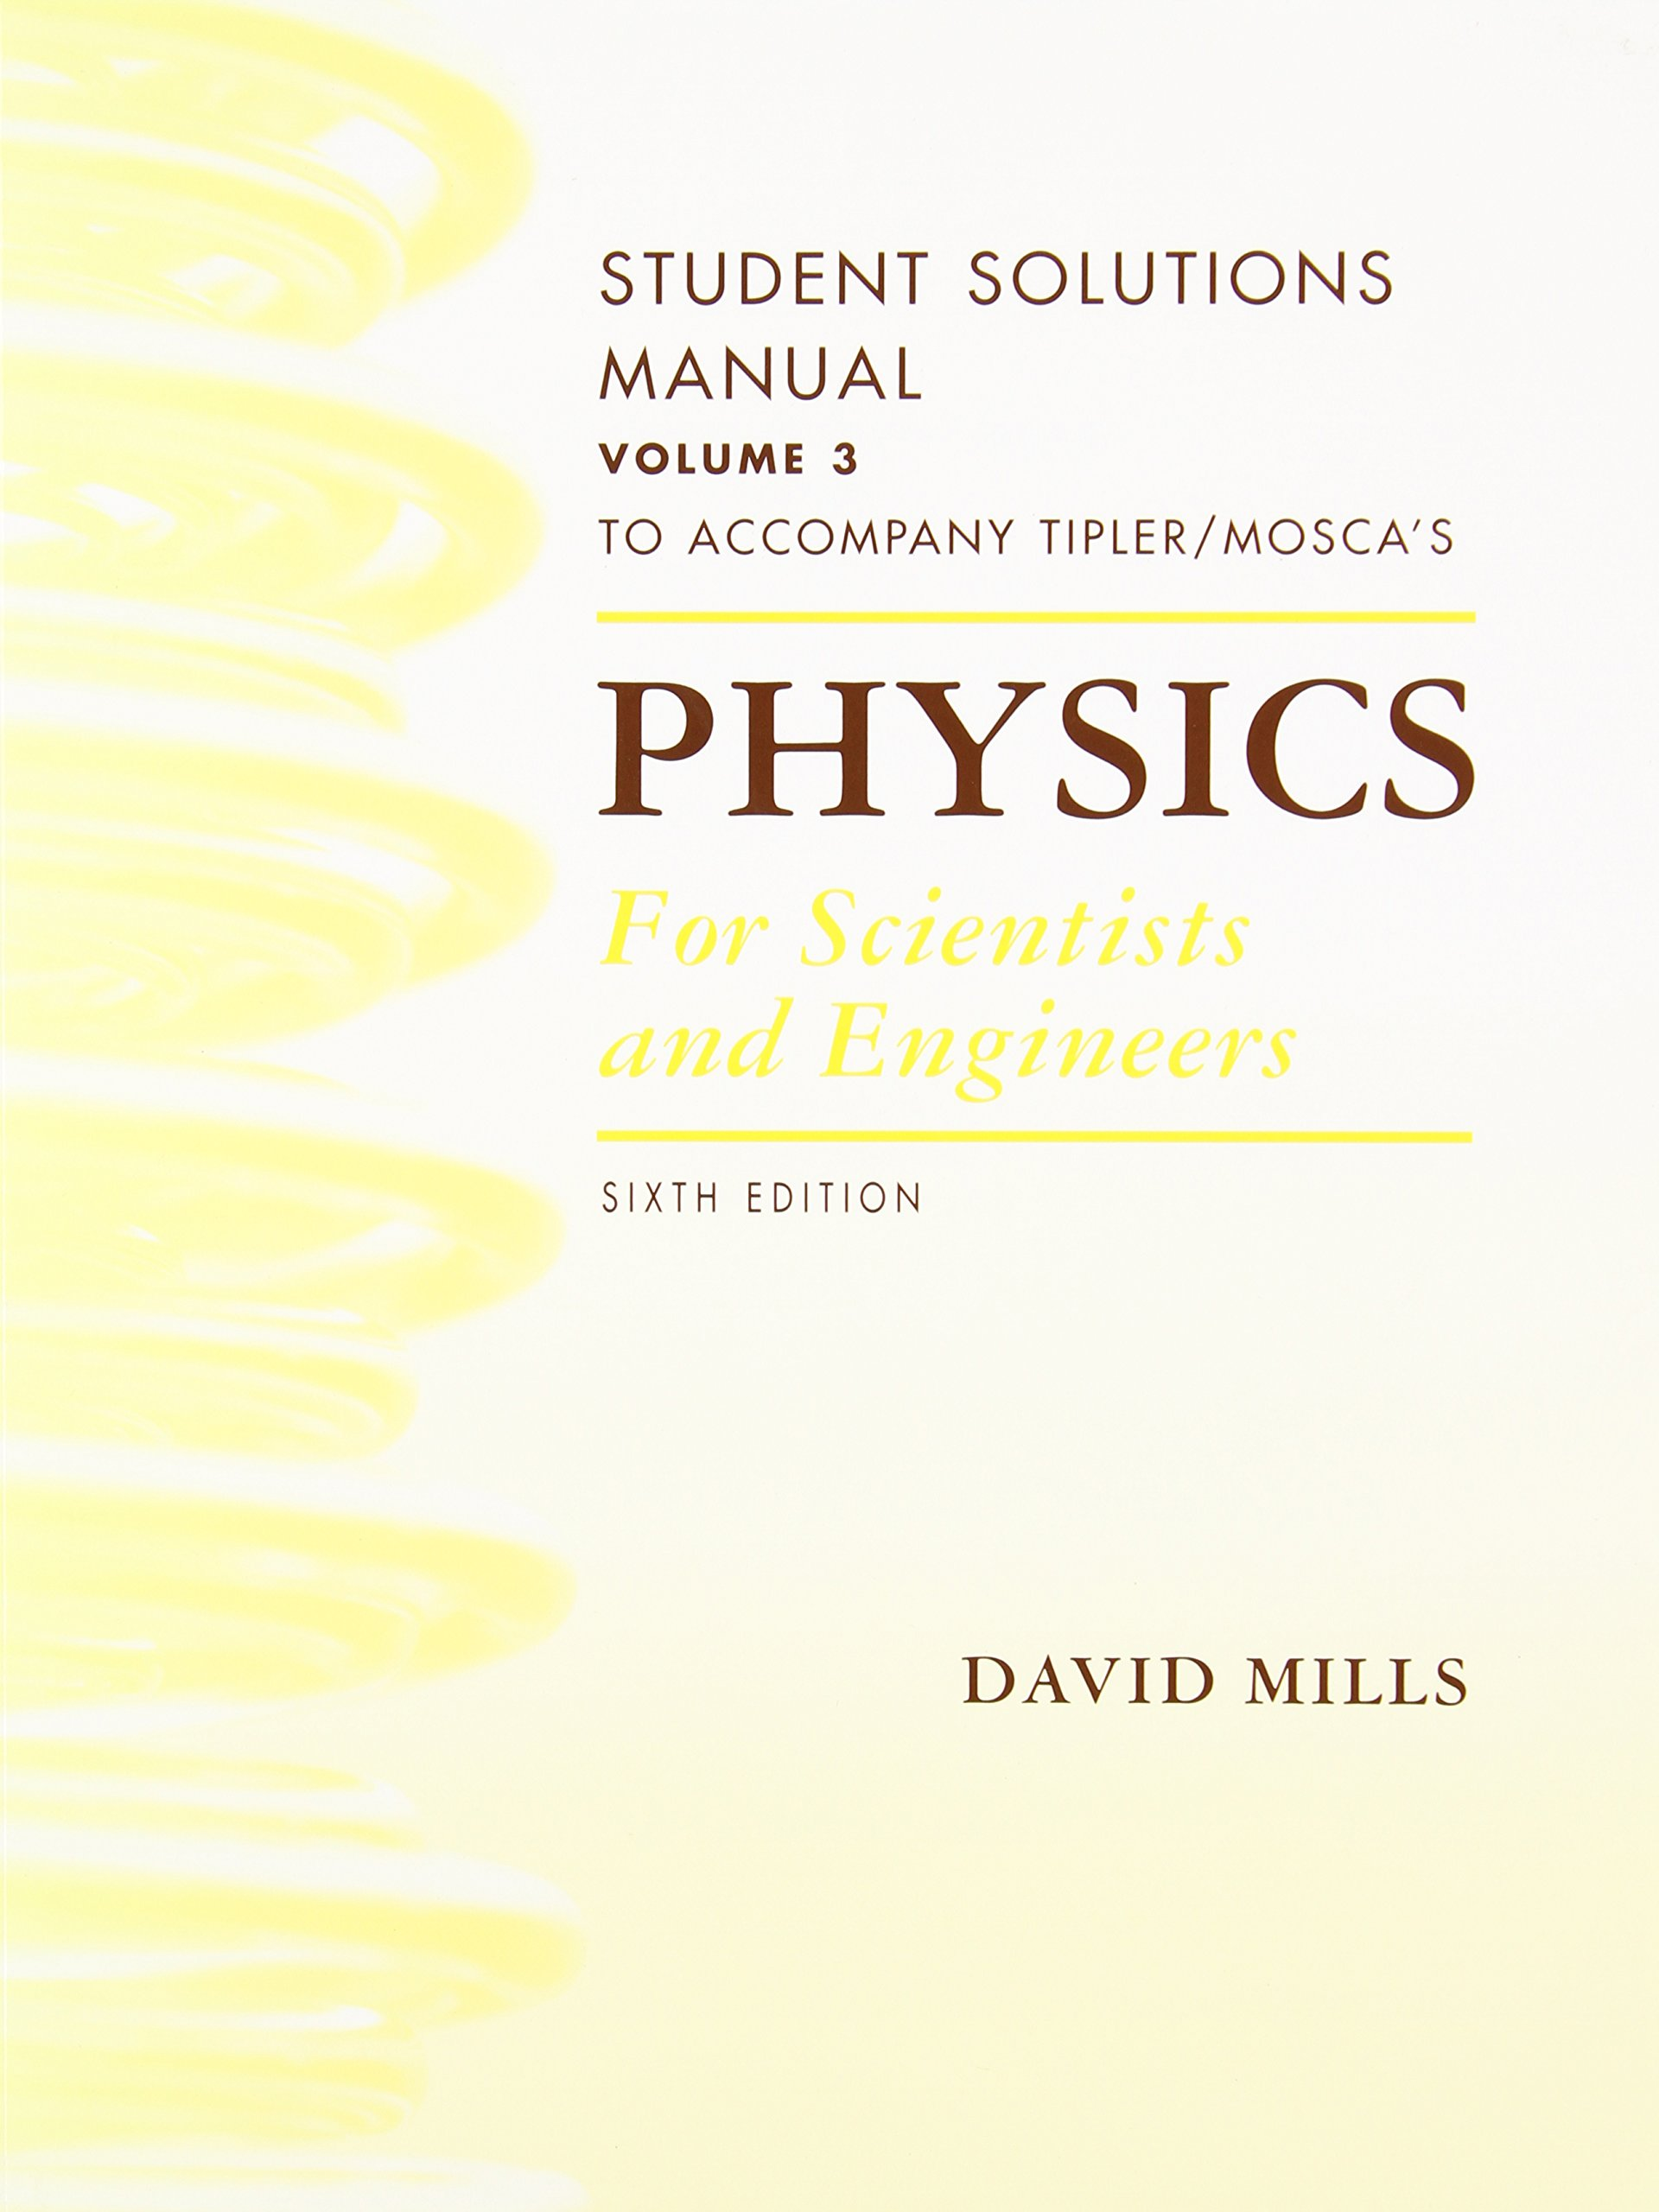 Student Solutions Manual, Volume 3 for Tipler and Mosca's Physics for  Scientists and Engineers: Amazon.co.uk: University Paul A Tipler, ...